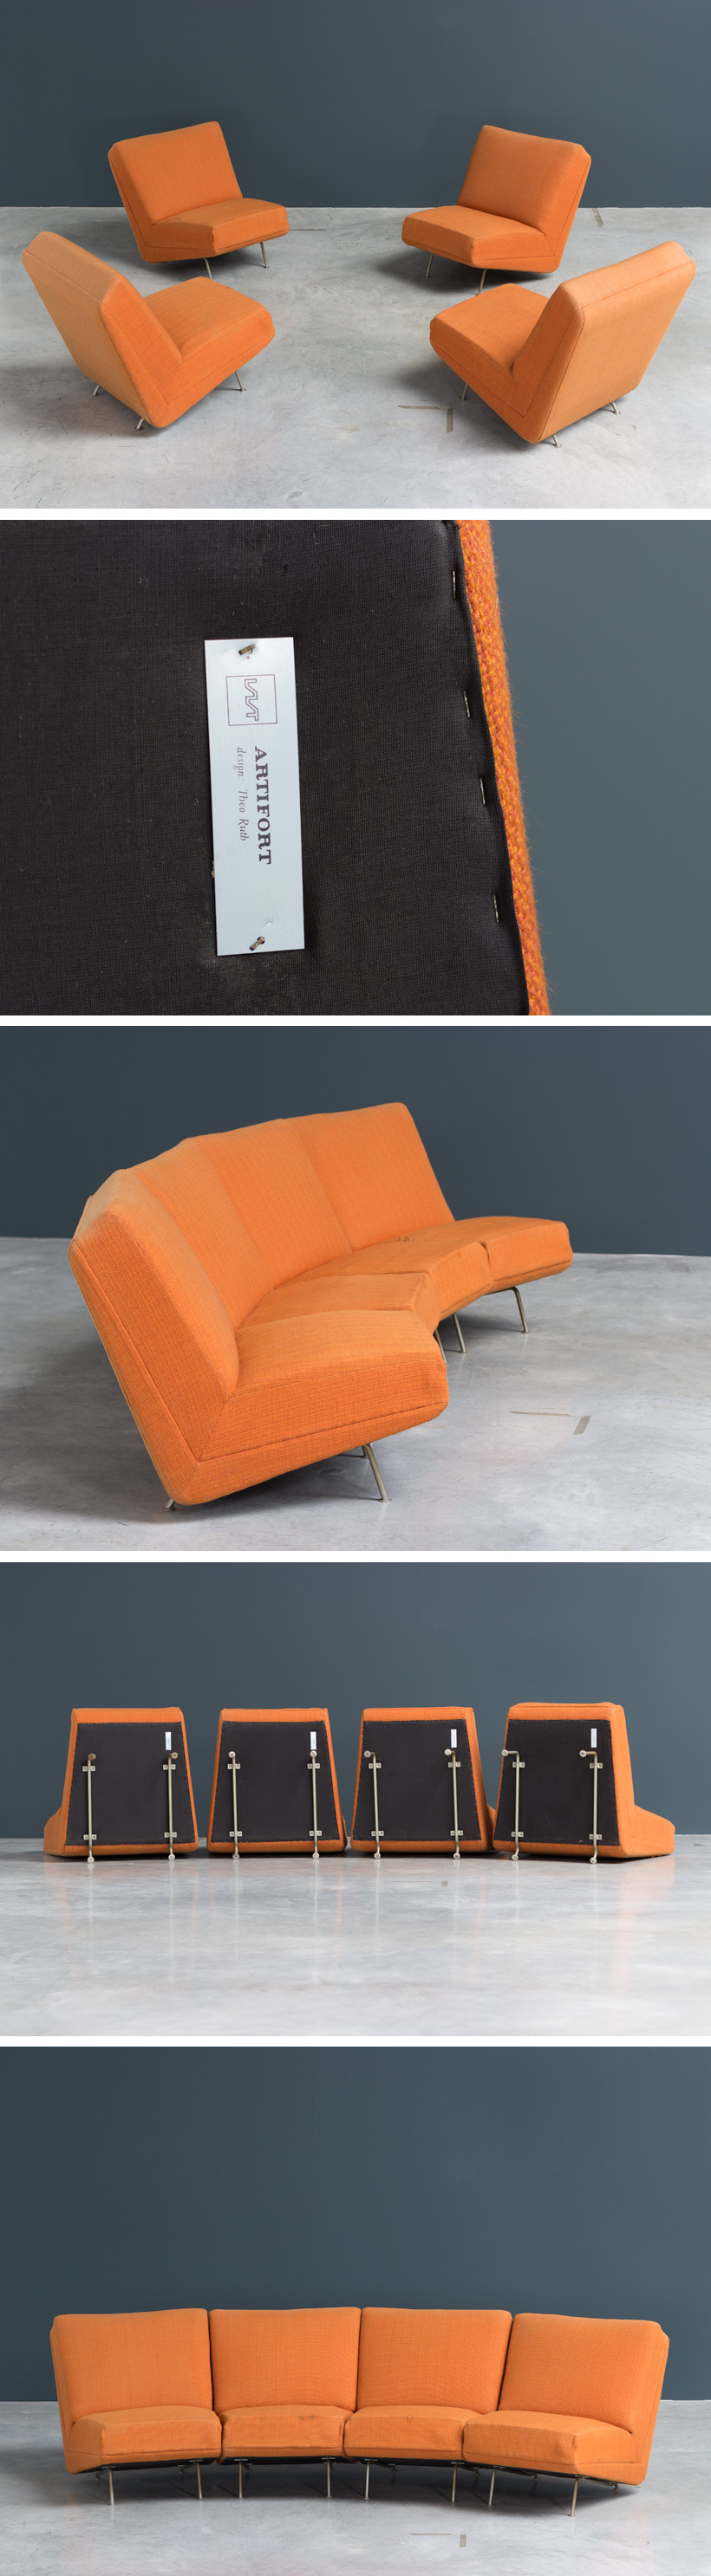 1950s Theo Ruth sectional sofa made by Artifort Large